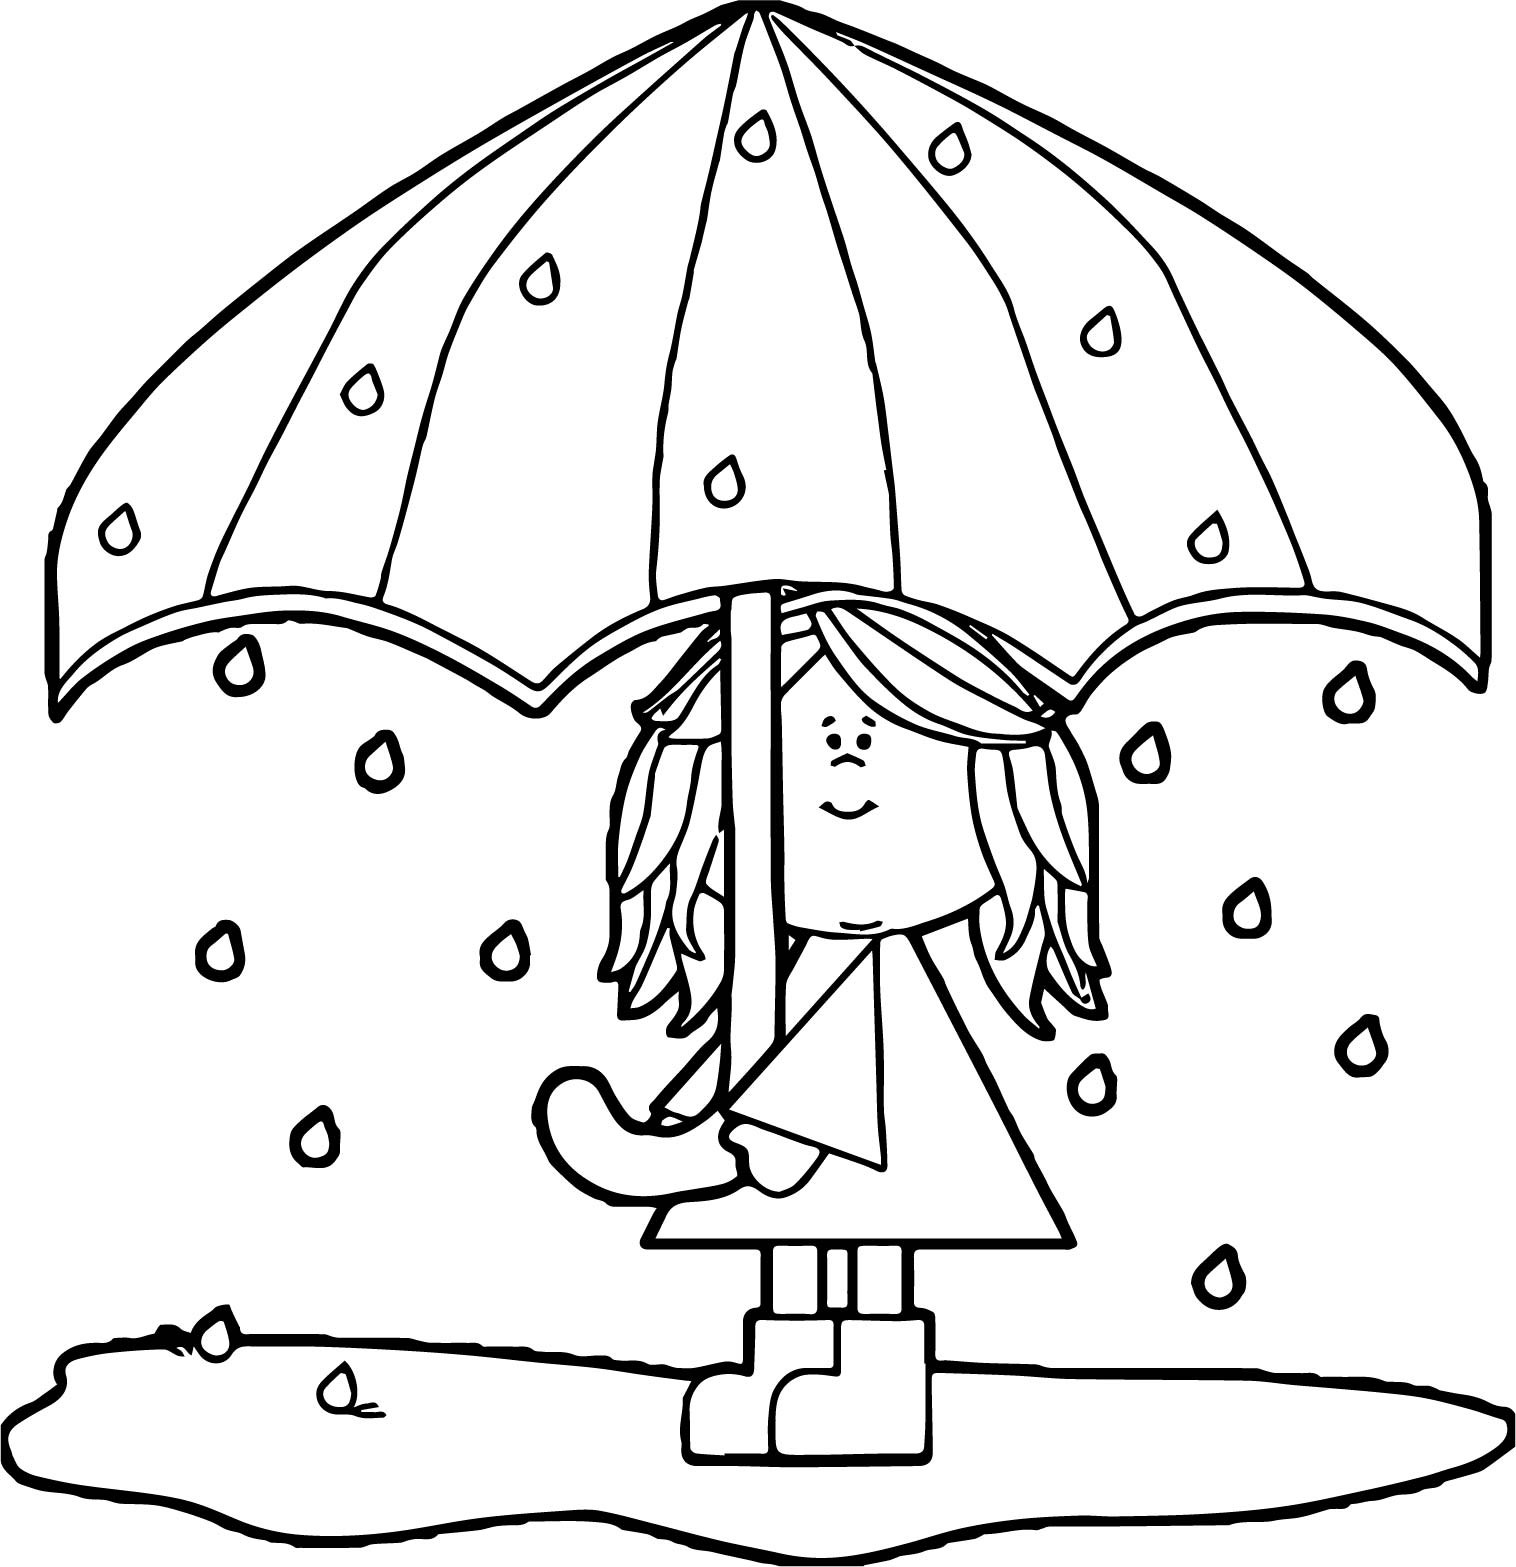 April Showers Bring May Flowers Coloring Page At